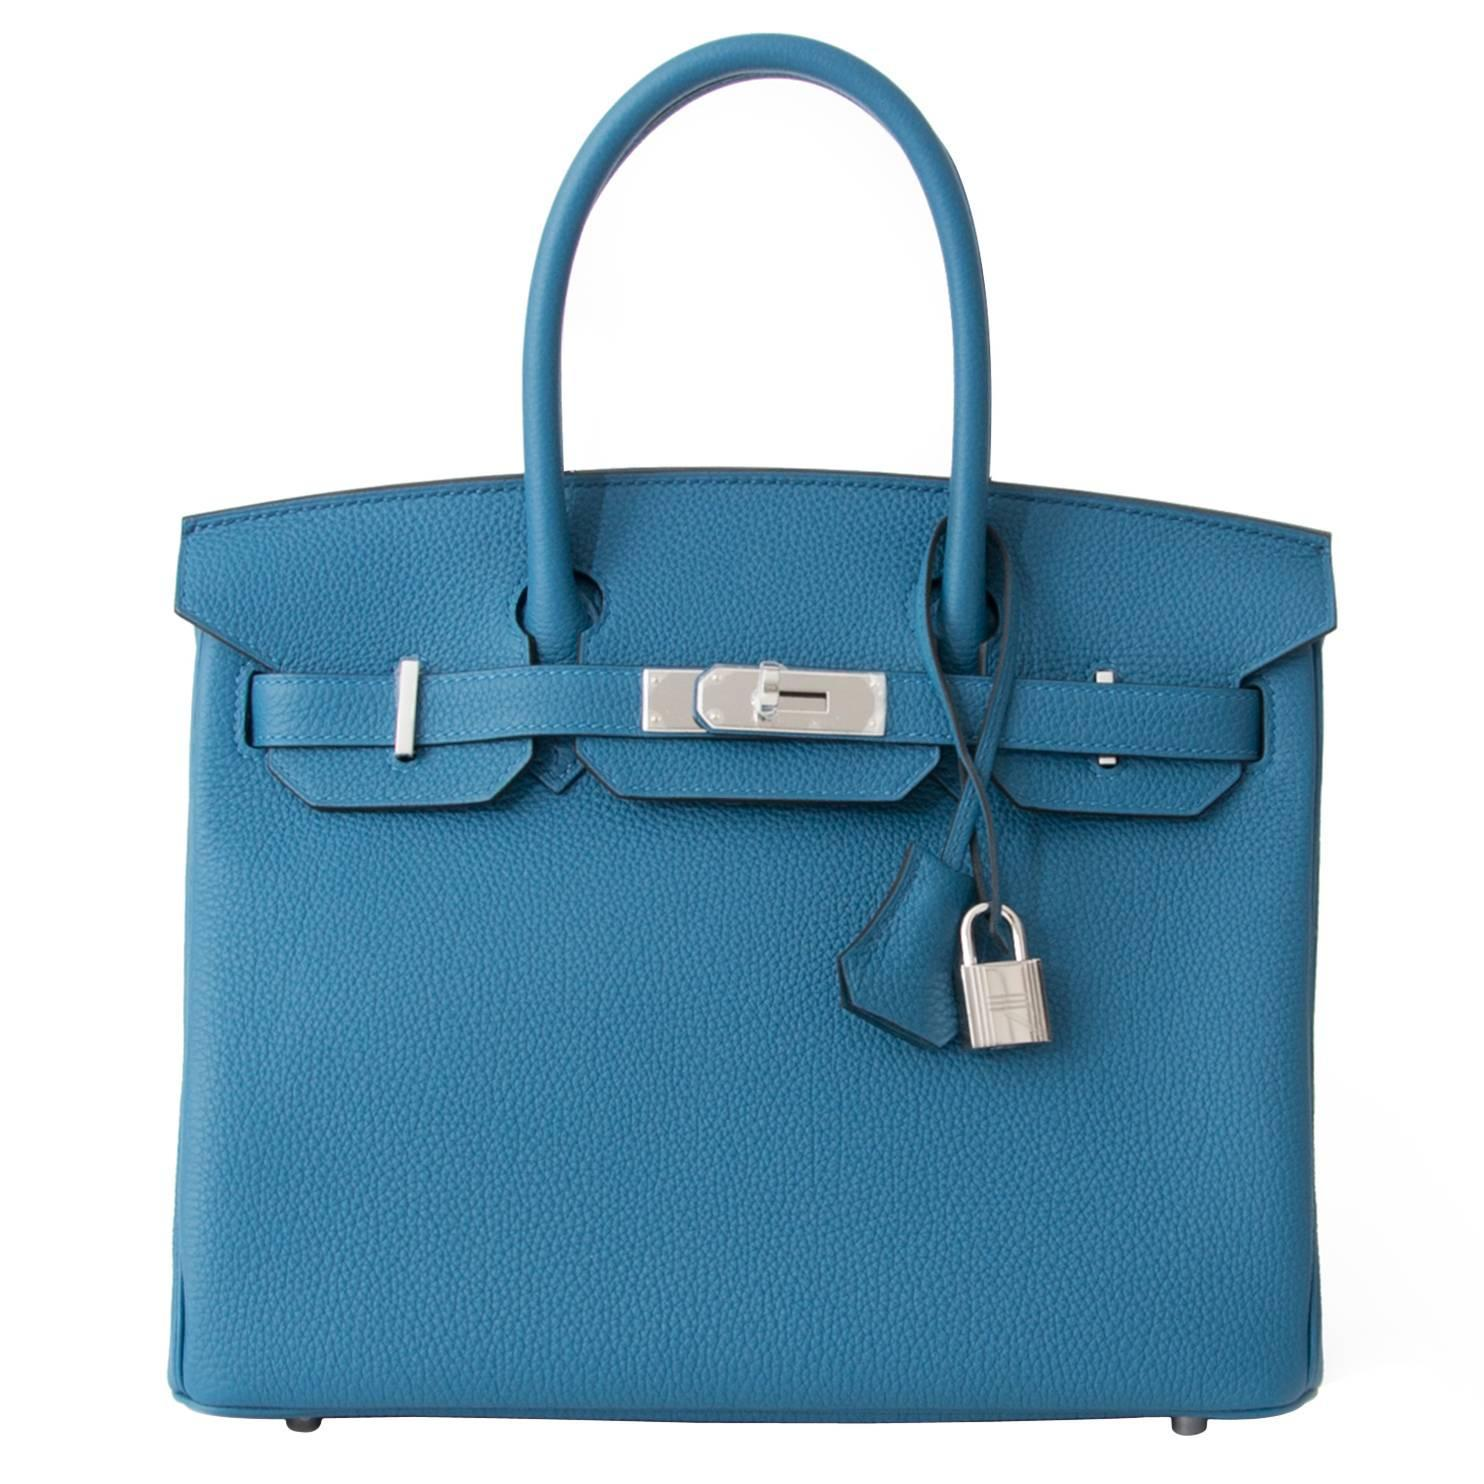 hermies bag - Brand NEW Hermes Birkin Togo Cobalt 30 PHW For Sale at 1stdibs